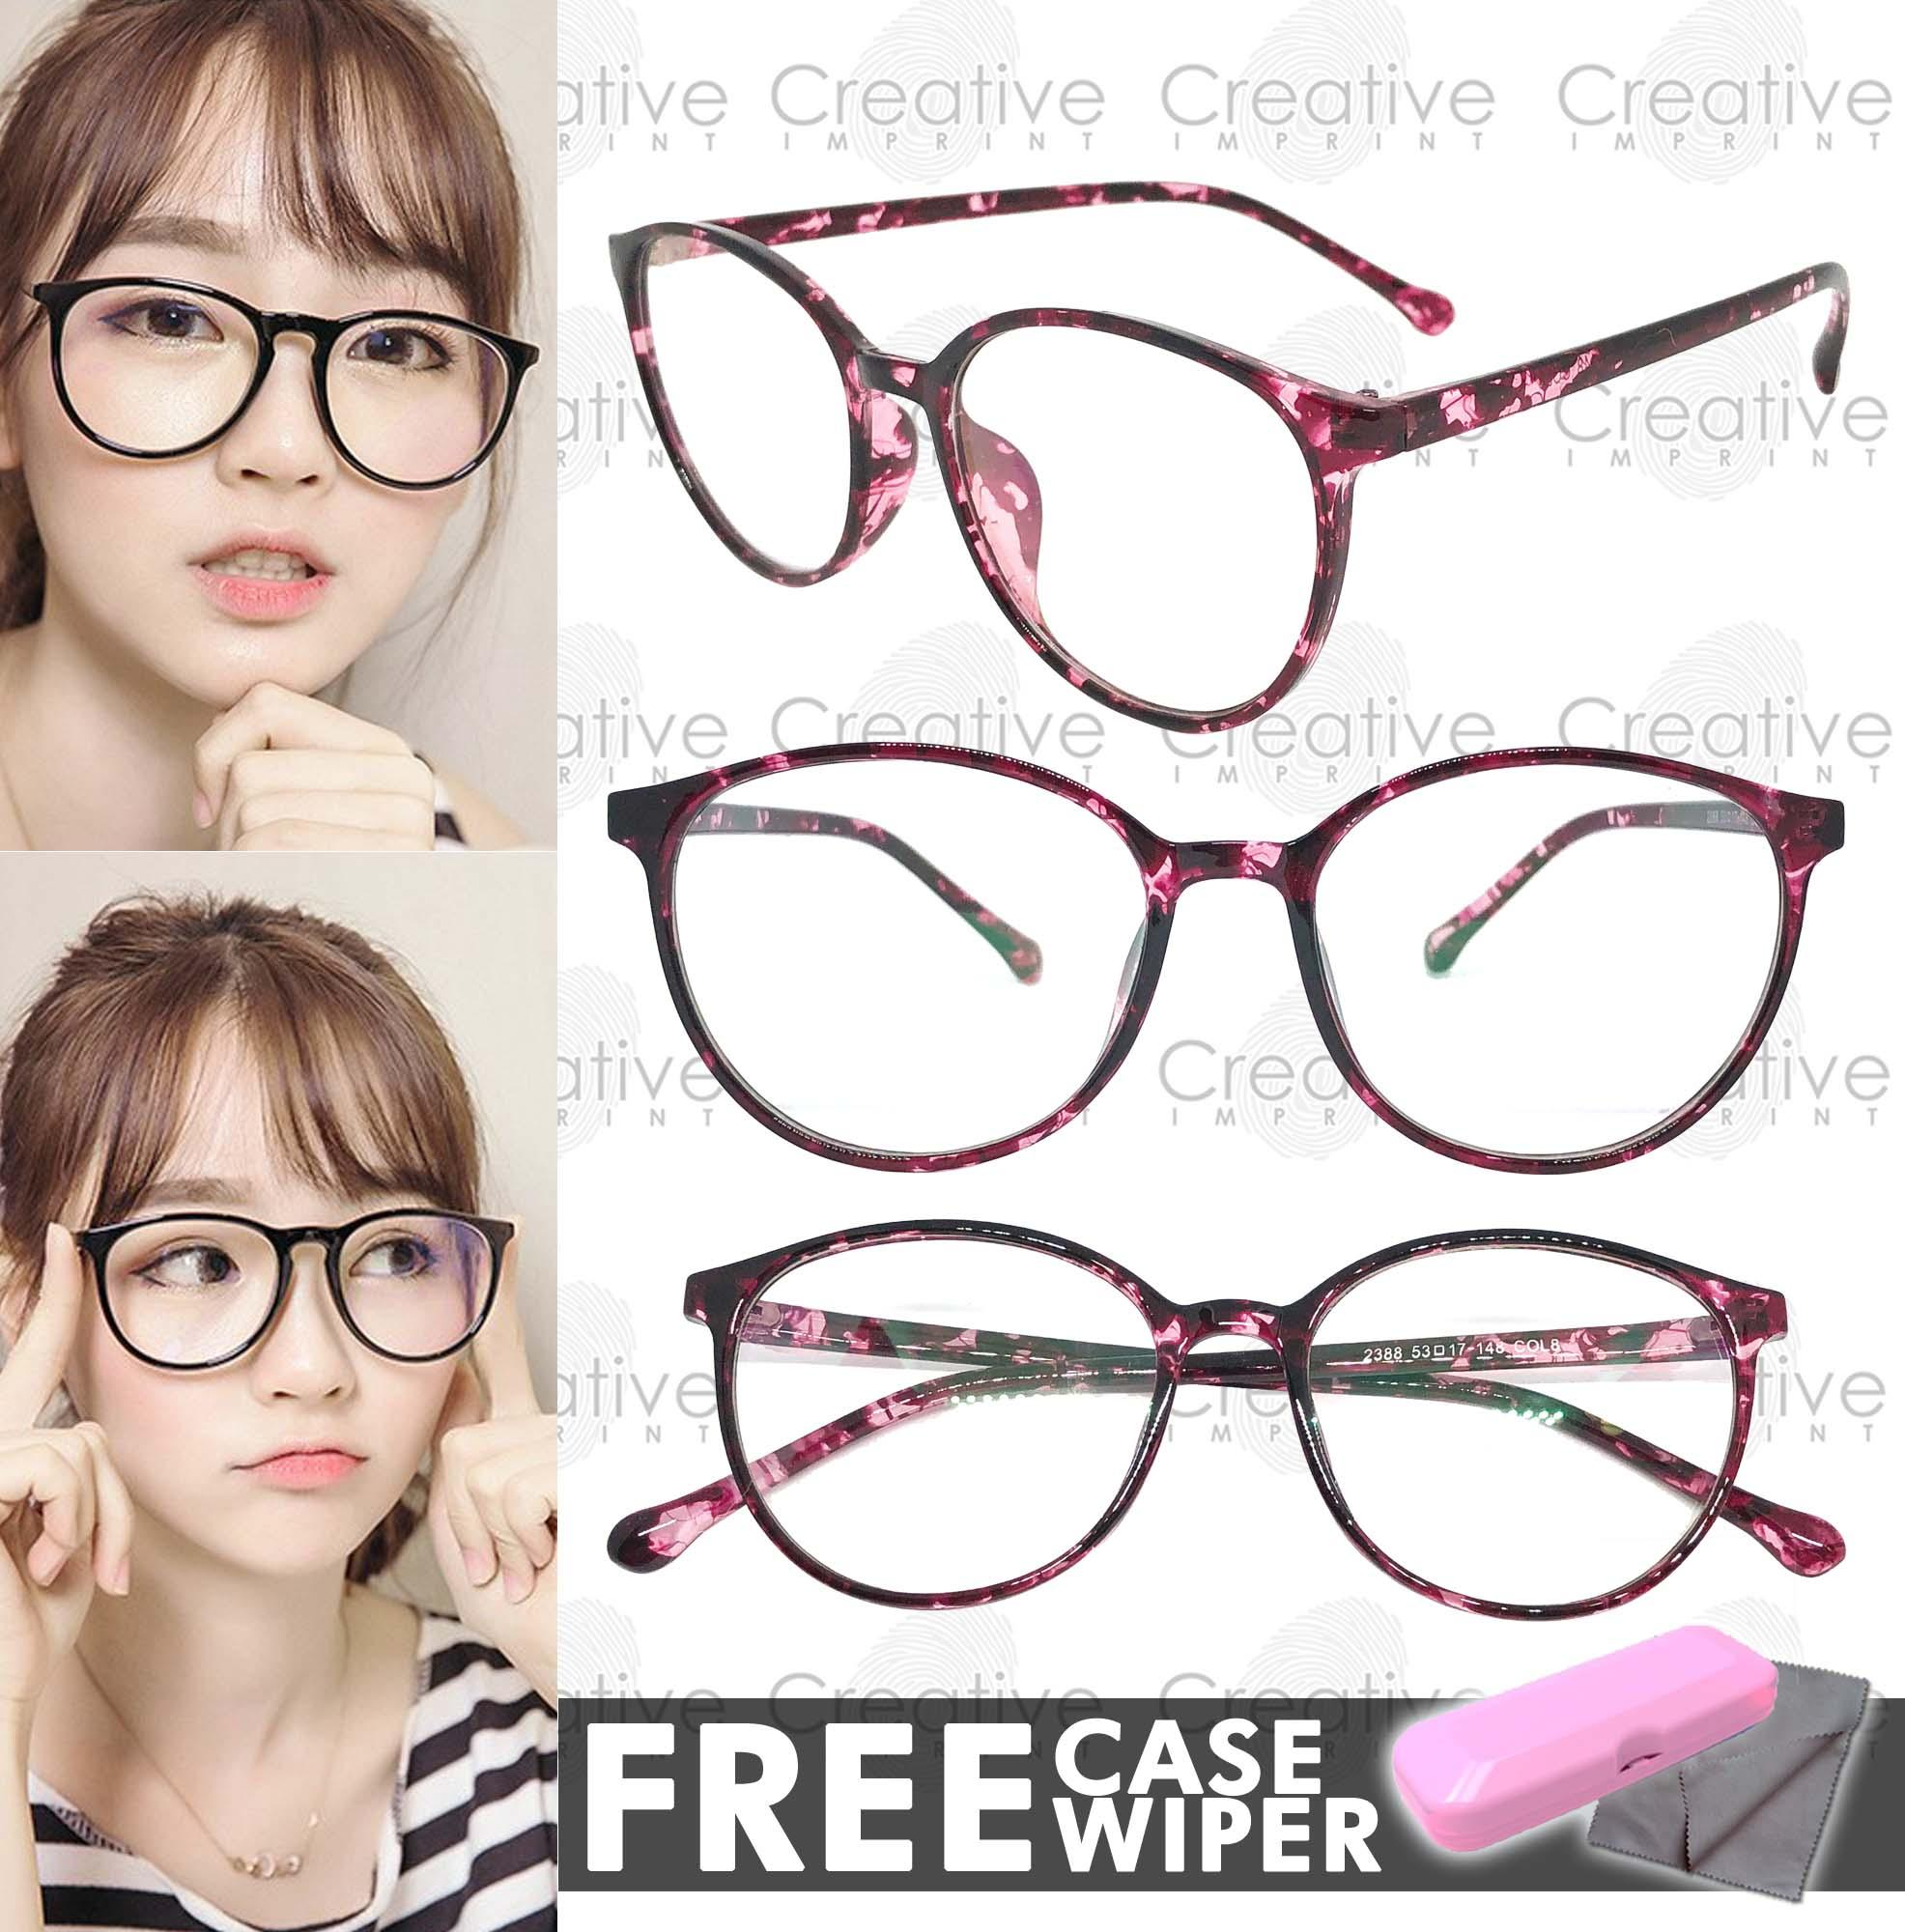 2cc82b2f05 Creative Imprint Eyeglasses Anti-Radiation Lens ( 05 Animal Print Purple)  Anti-